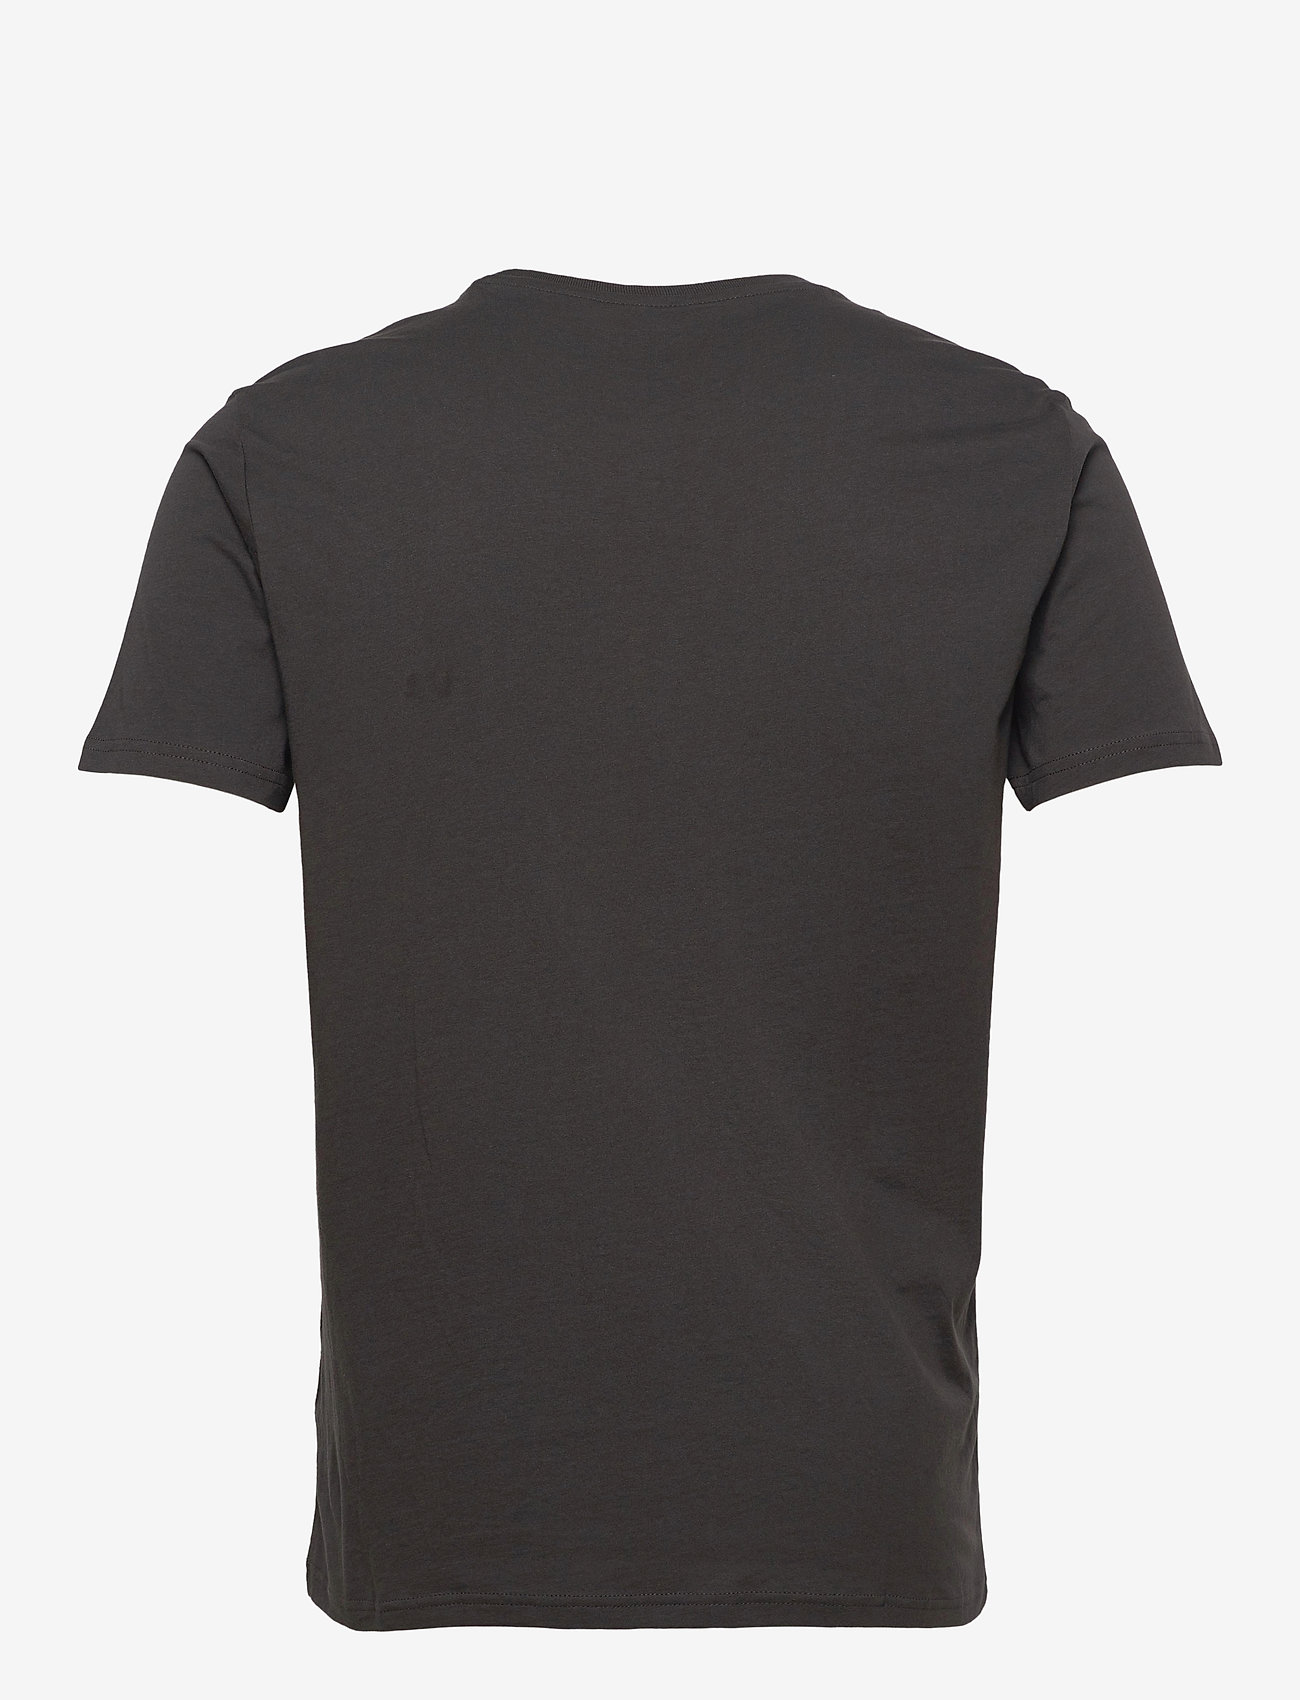 Lee Jeans - SS PATCH LOGO TEE - basic t-shirts - washed black - 1